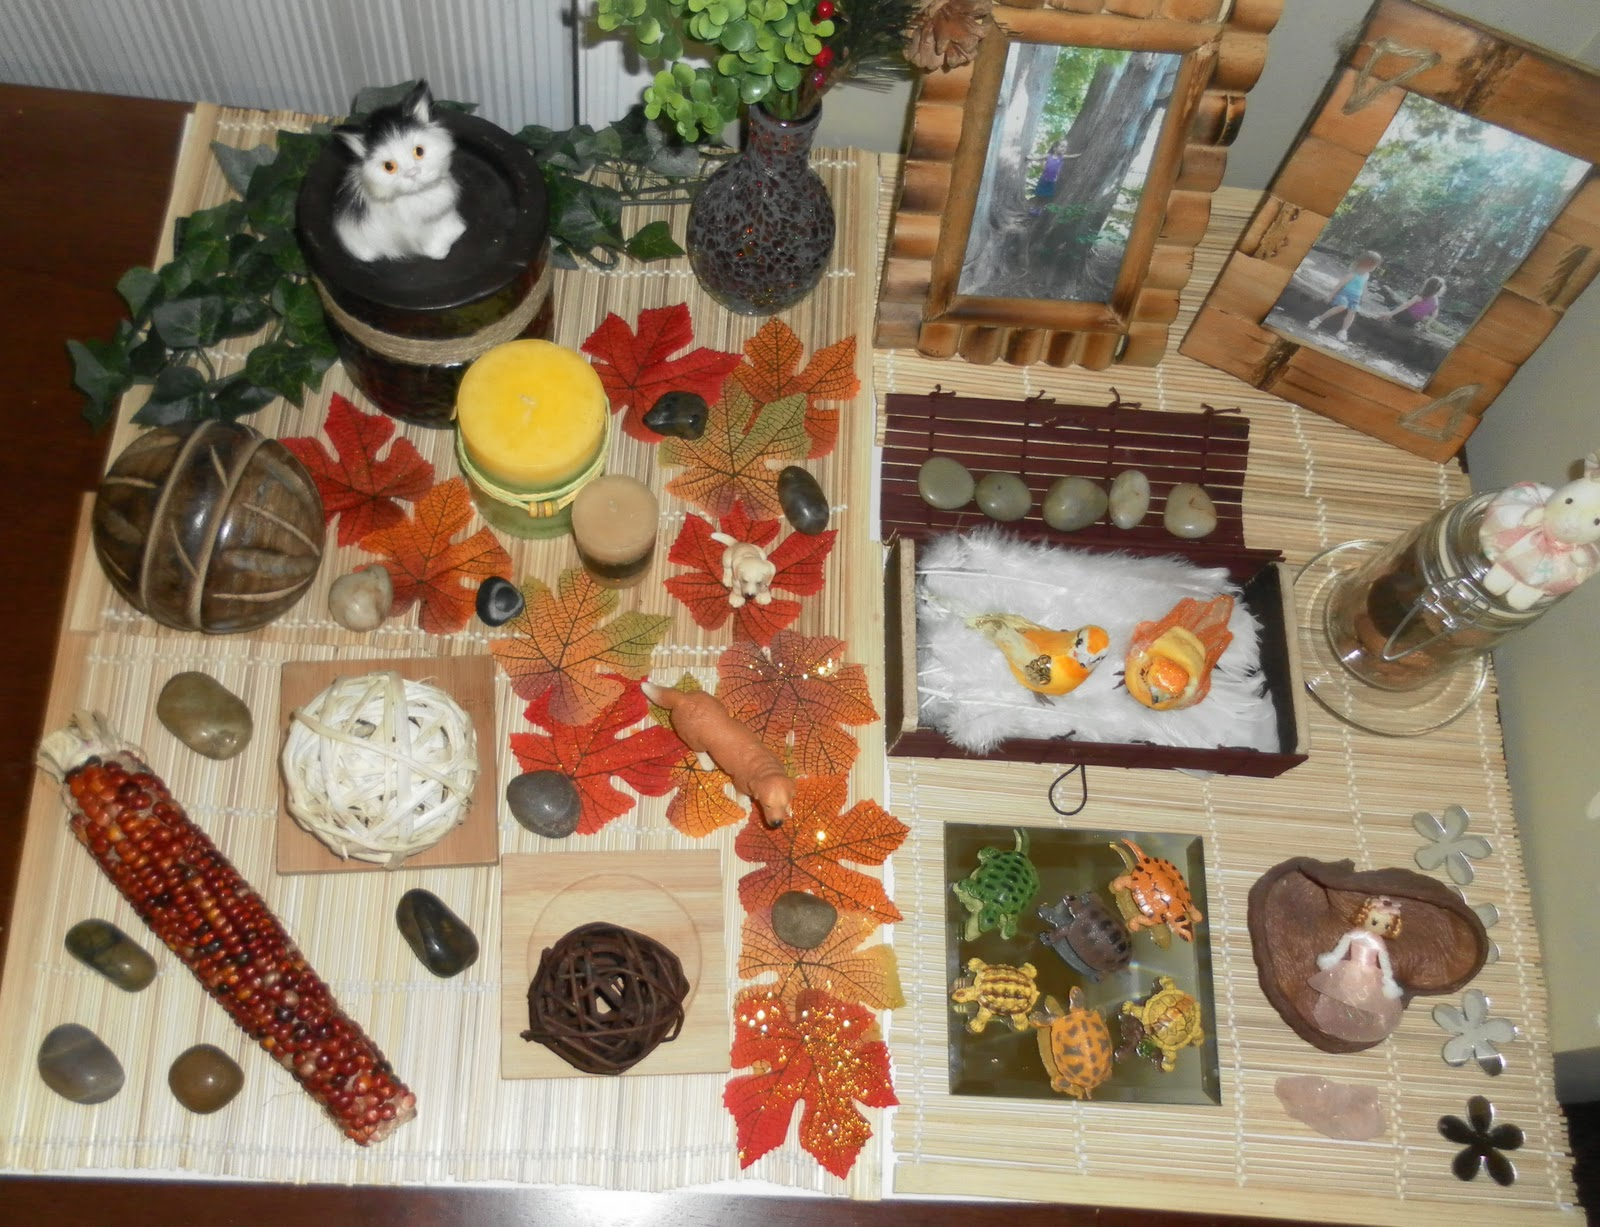 Winter nature table - The Theme For This Table Was Respect For Animals And 3 Sizes We Have Noticed Our Butterfly Being A Little Rough With The Family Dog Lately